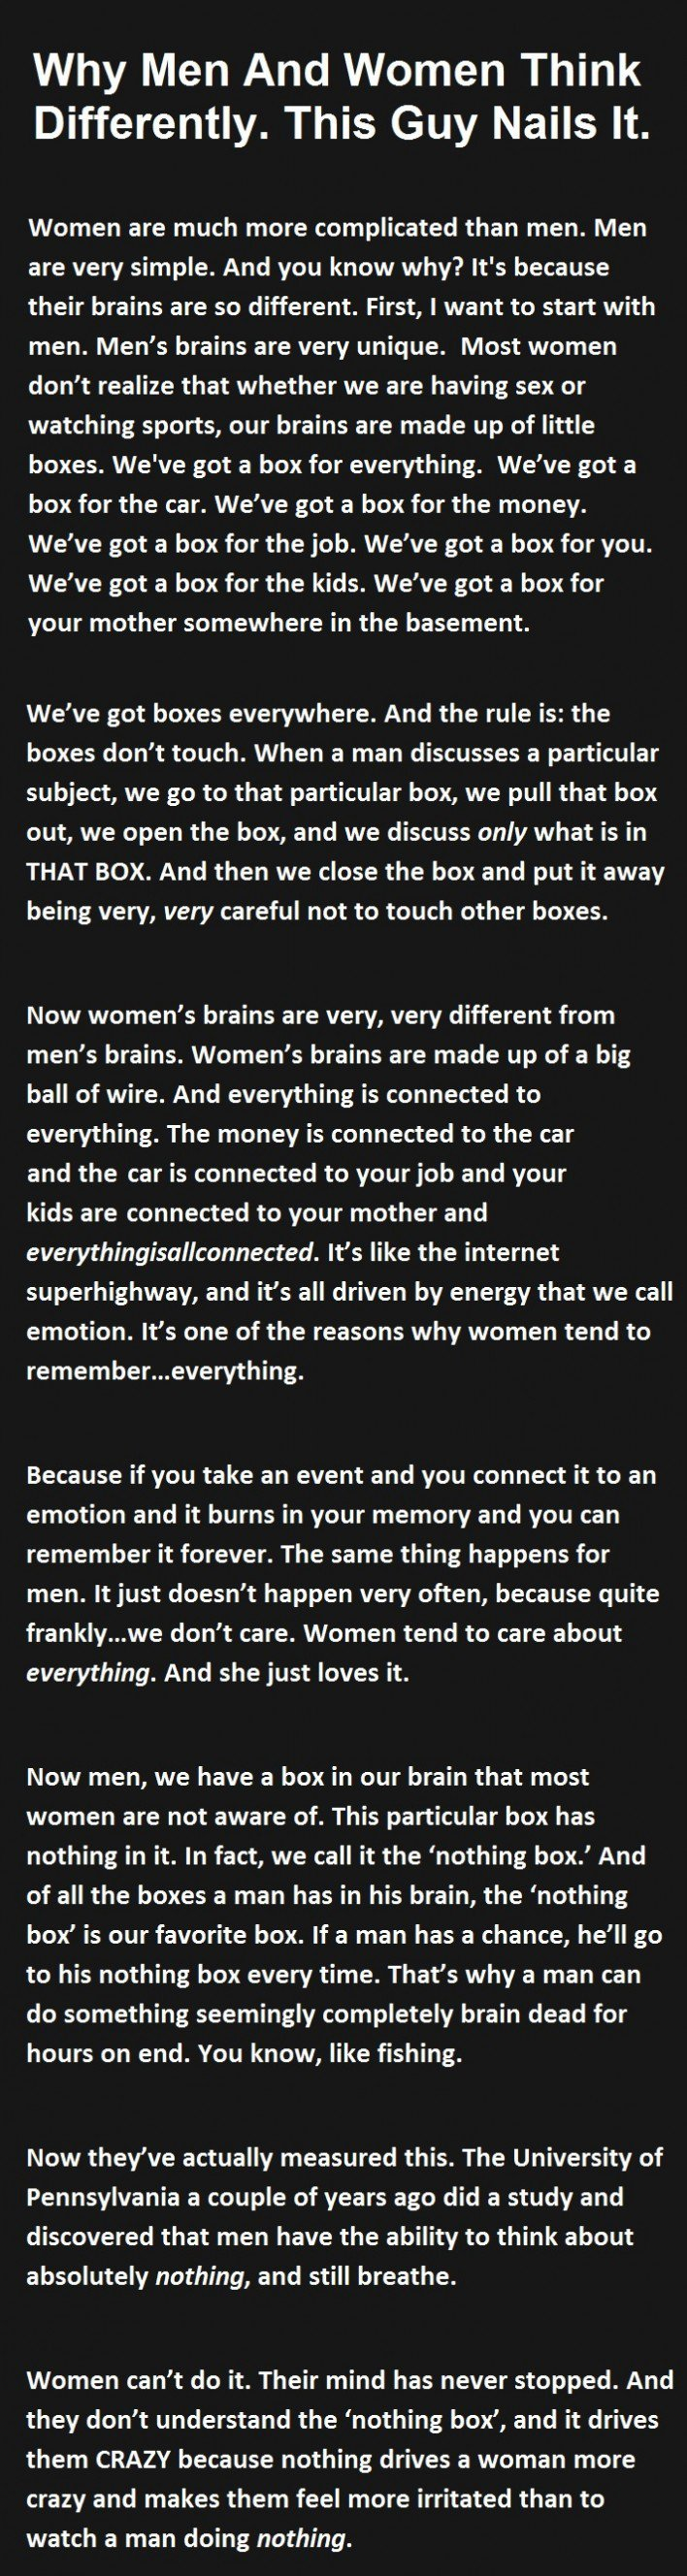 men and women are really different Men and women are different their minds are different men are different from the very composition of their blood to the ways their brains develop.